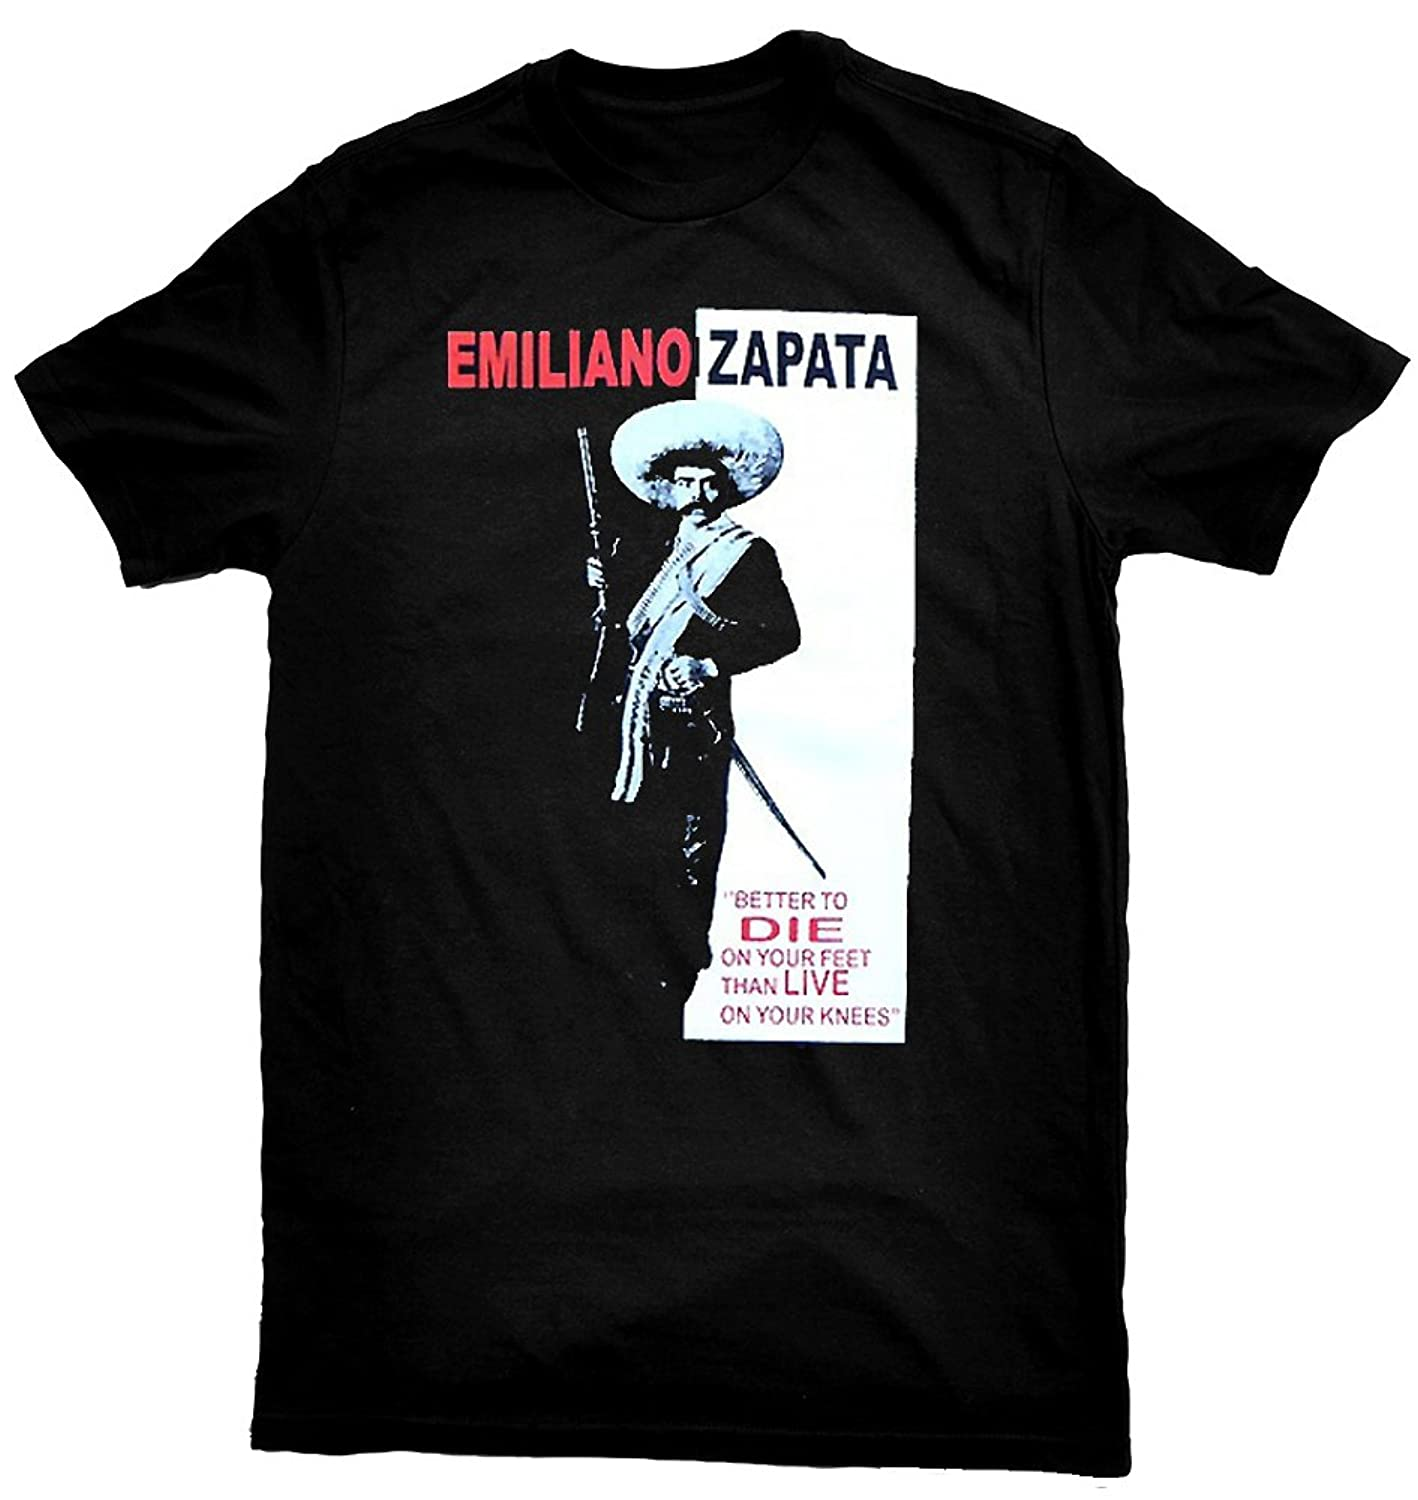 Emiliano Zapata Better To Die on Your Feet Than Live on Your Knees T-Shirt